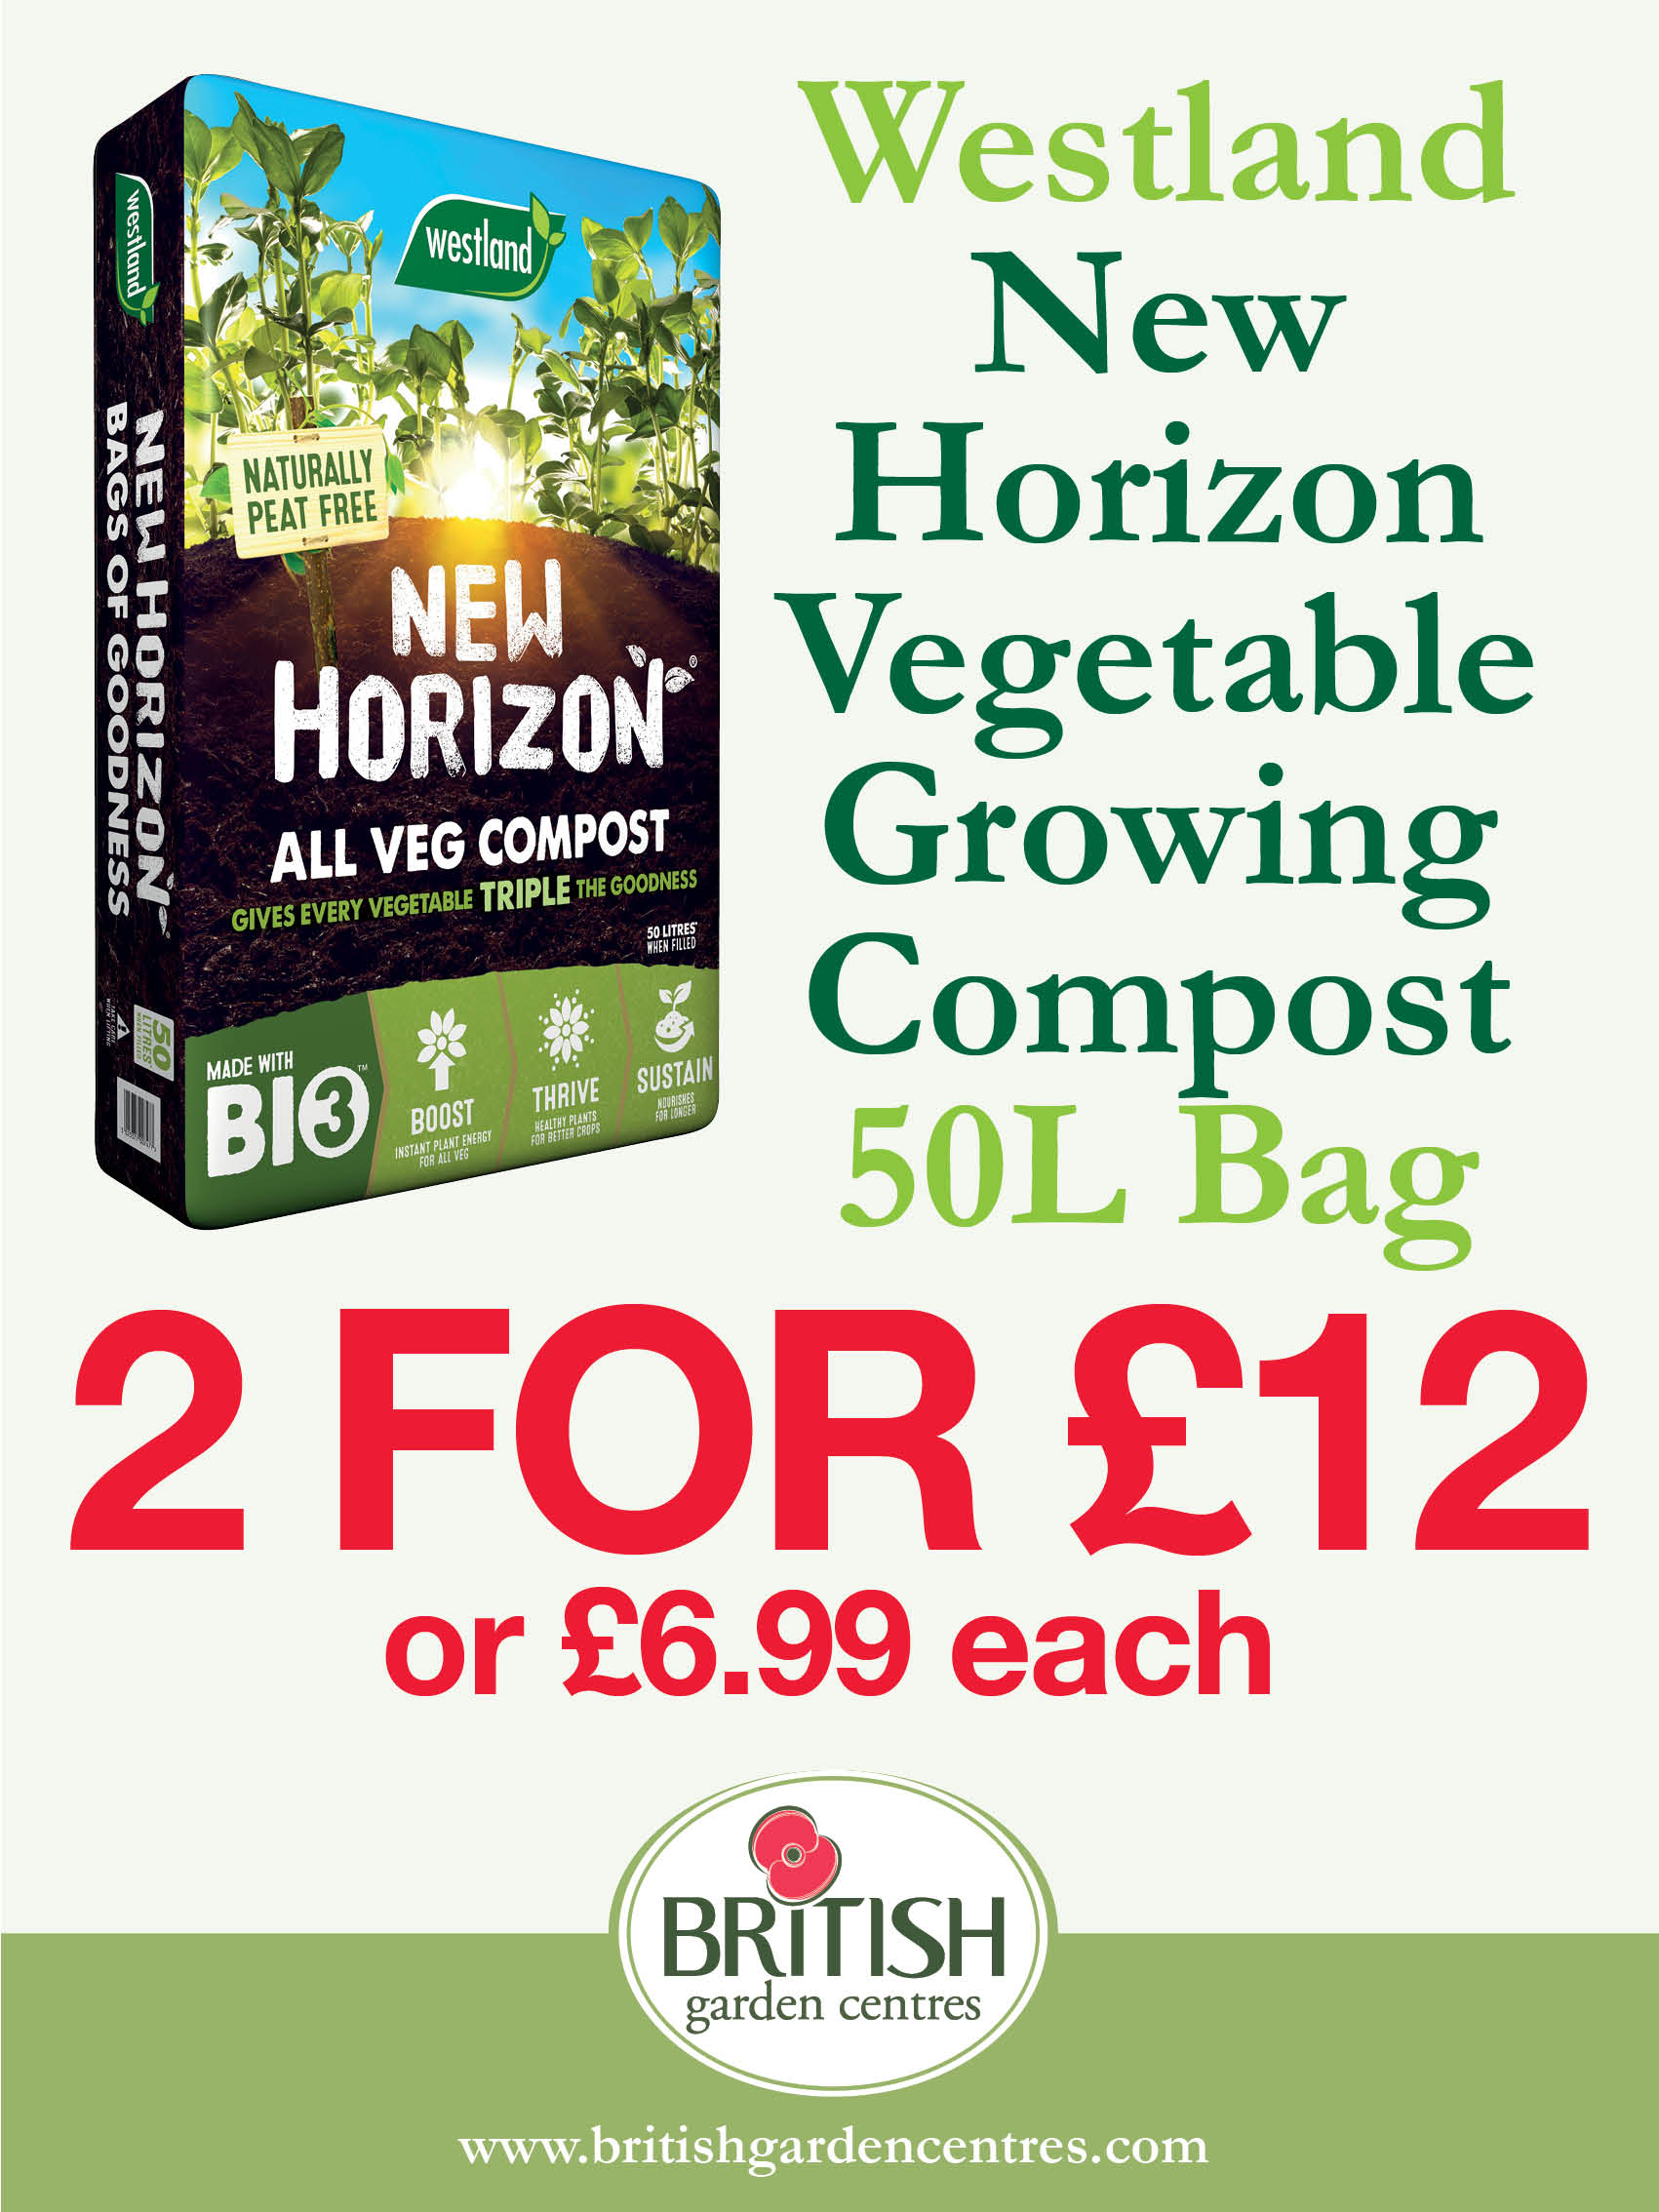 New Horizon Vegetable Growing Compost